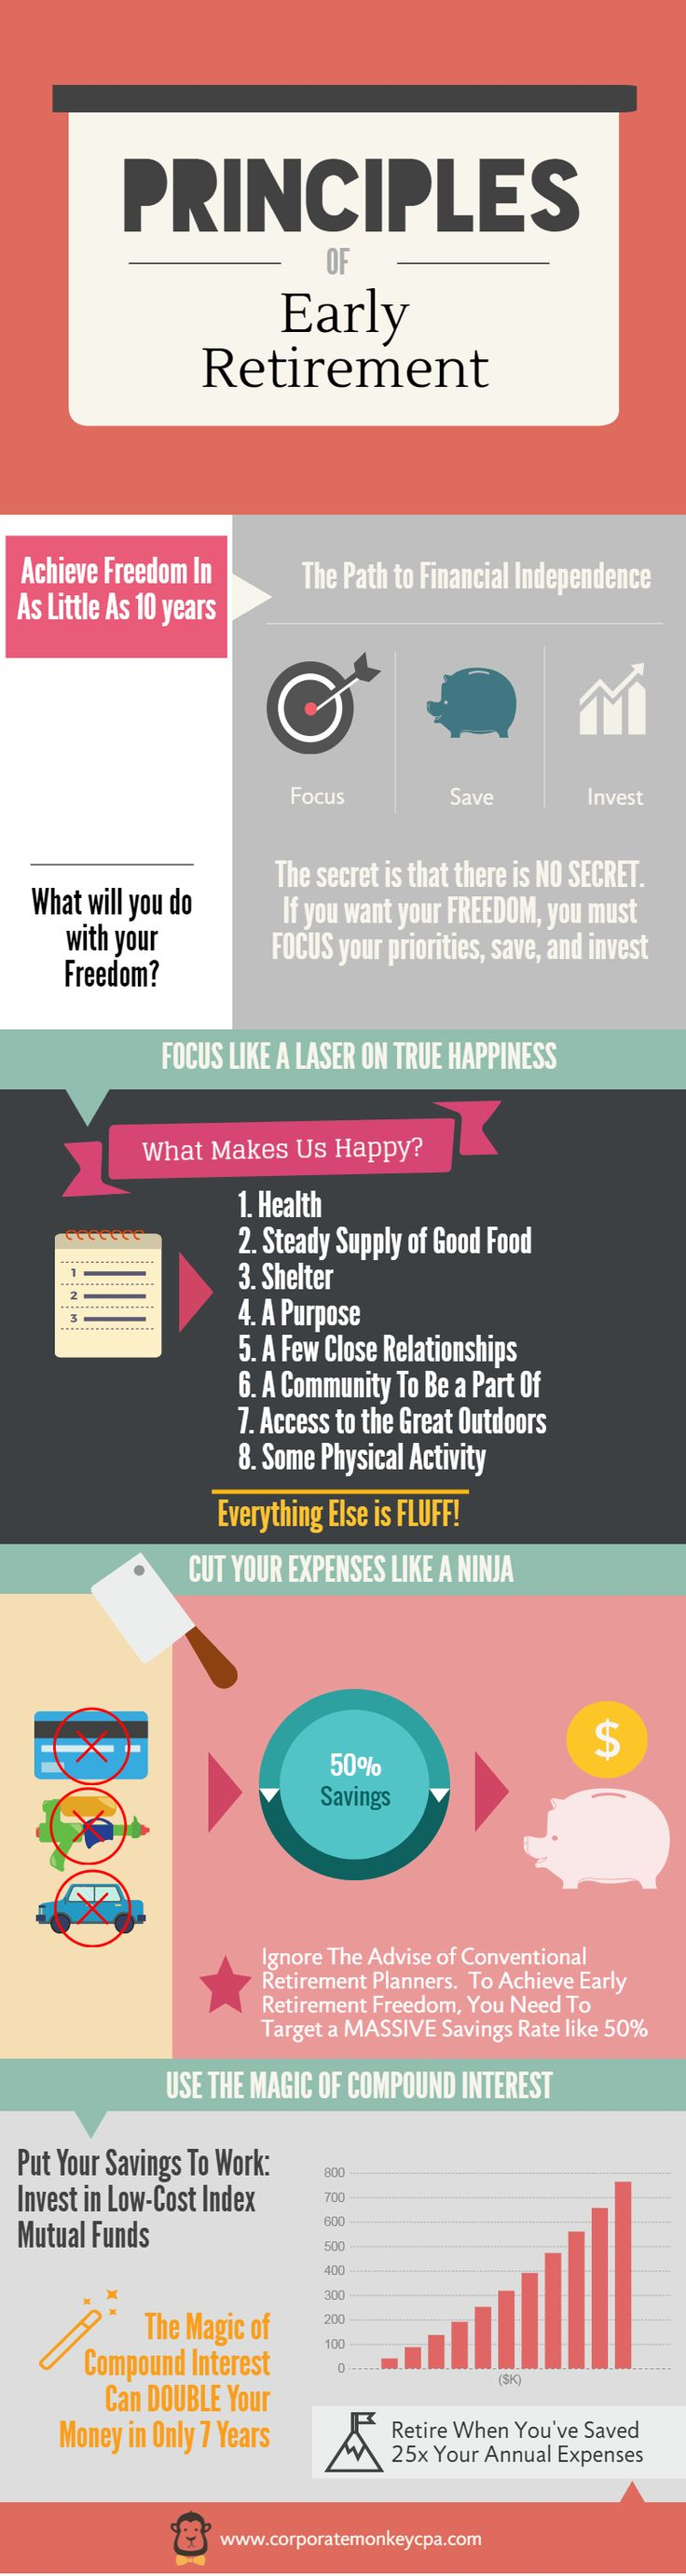 The Principles of Early Retirement, Or How To Win Your Freedom.Corporate Monkey, CPA